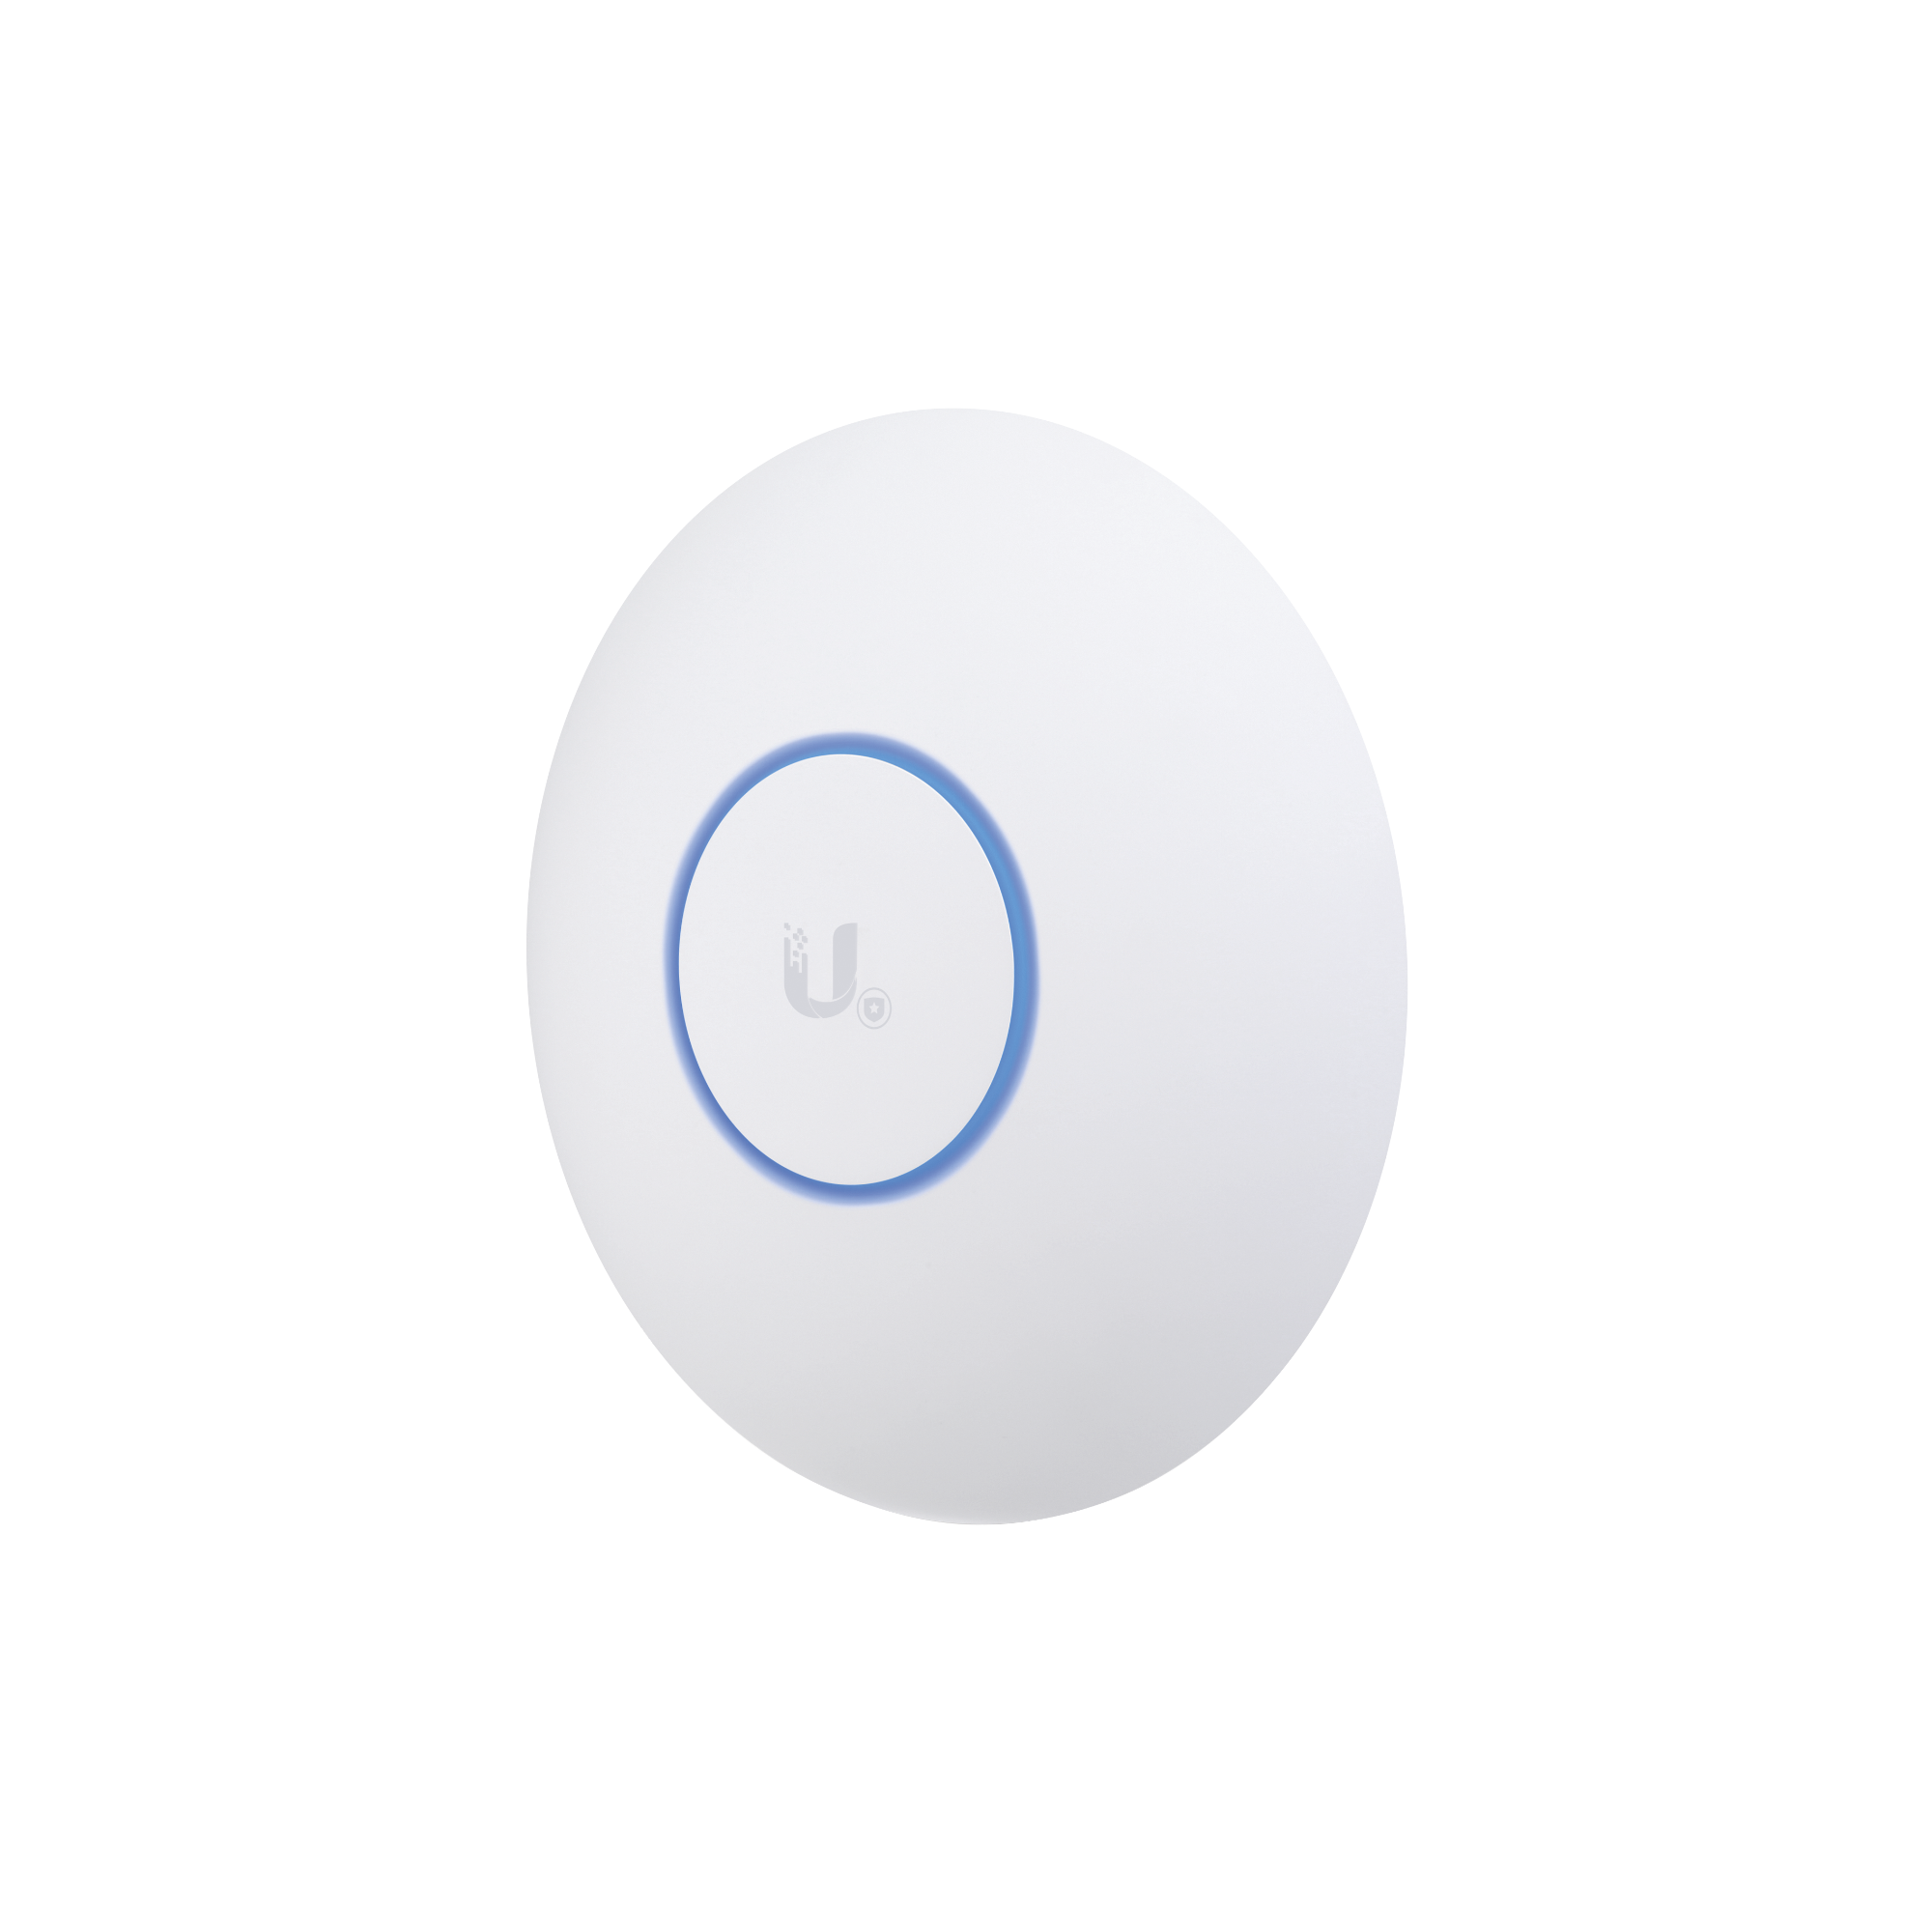 Access Point UniFi doble banda 802.11ac Wave 2 MU-MIMO 4X4, airView, airTime, hasta 500 clientes, antena Beamforming, PoE 802.3at